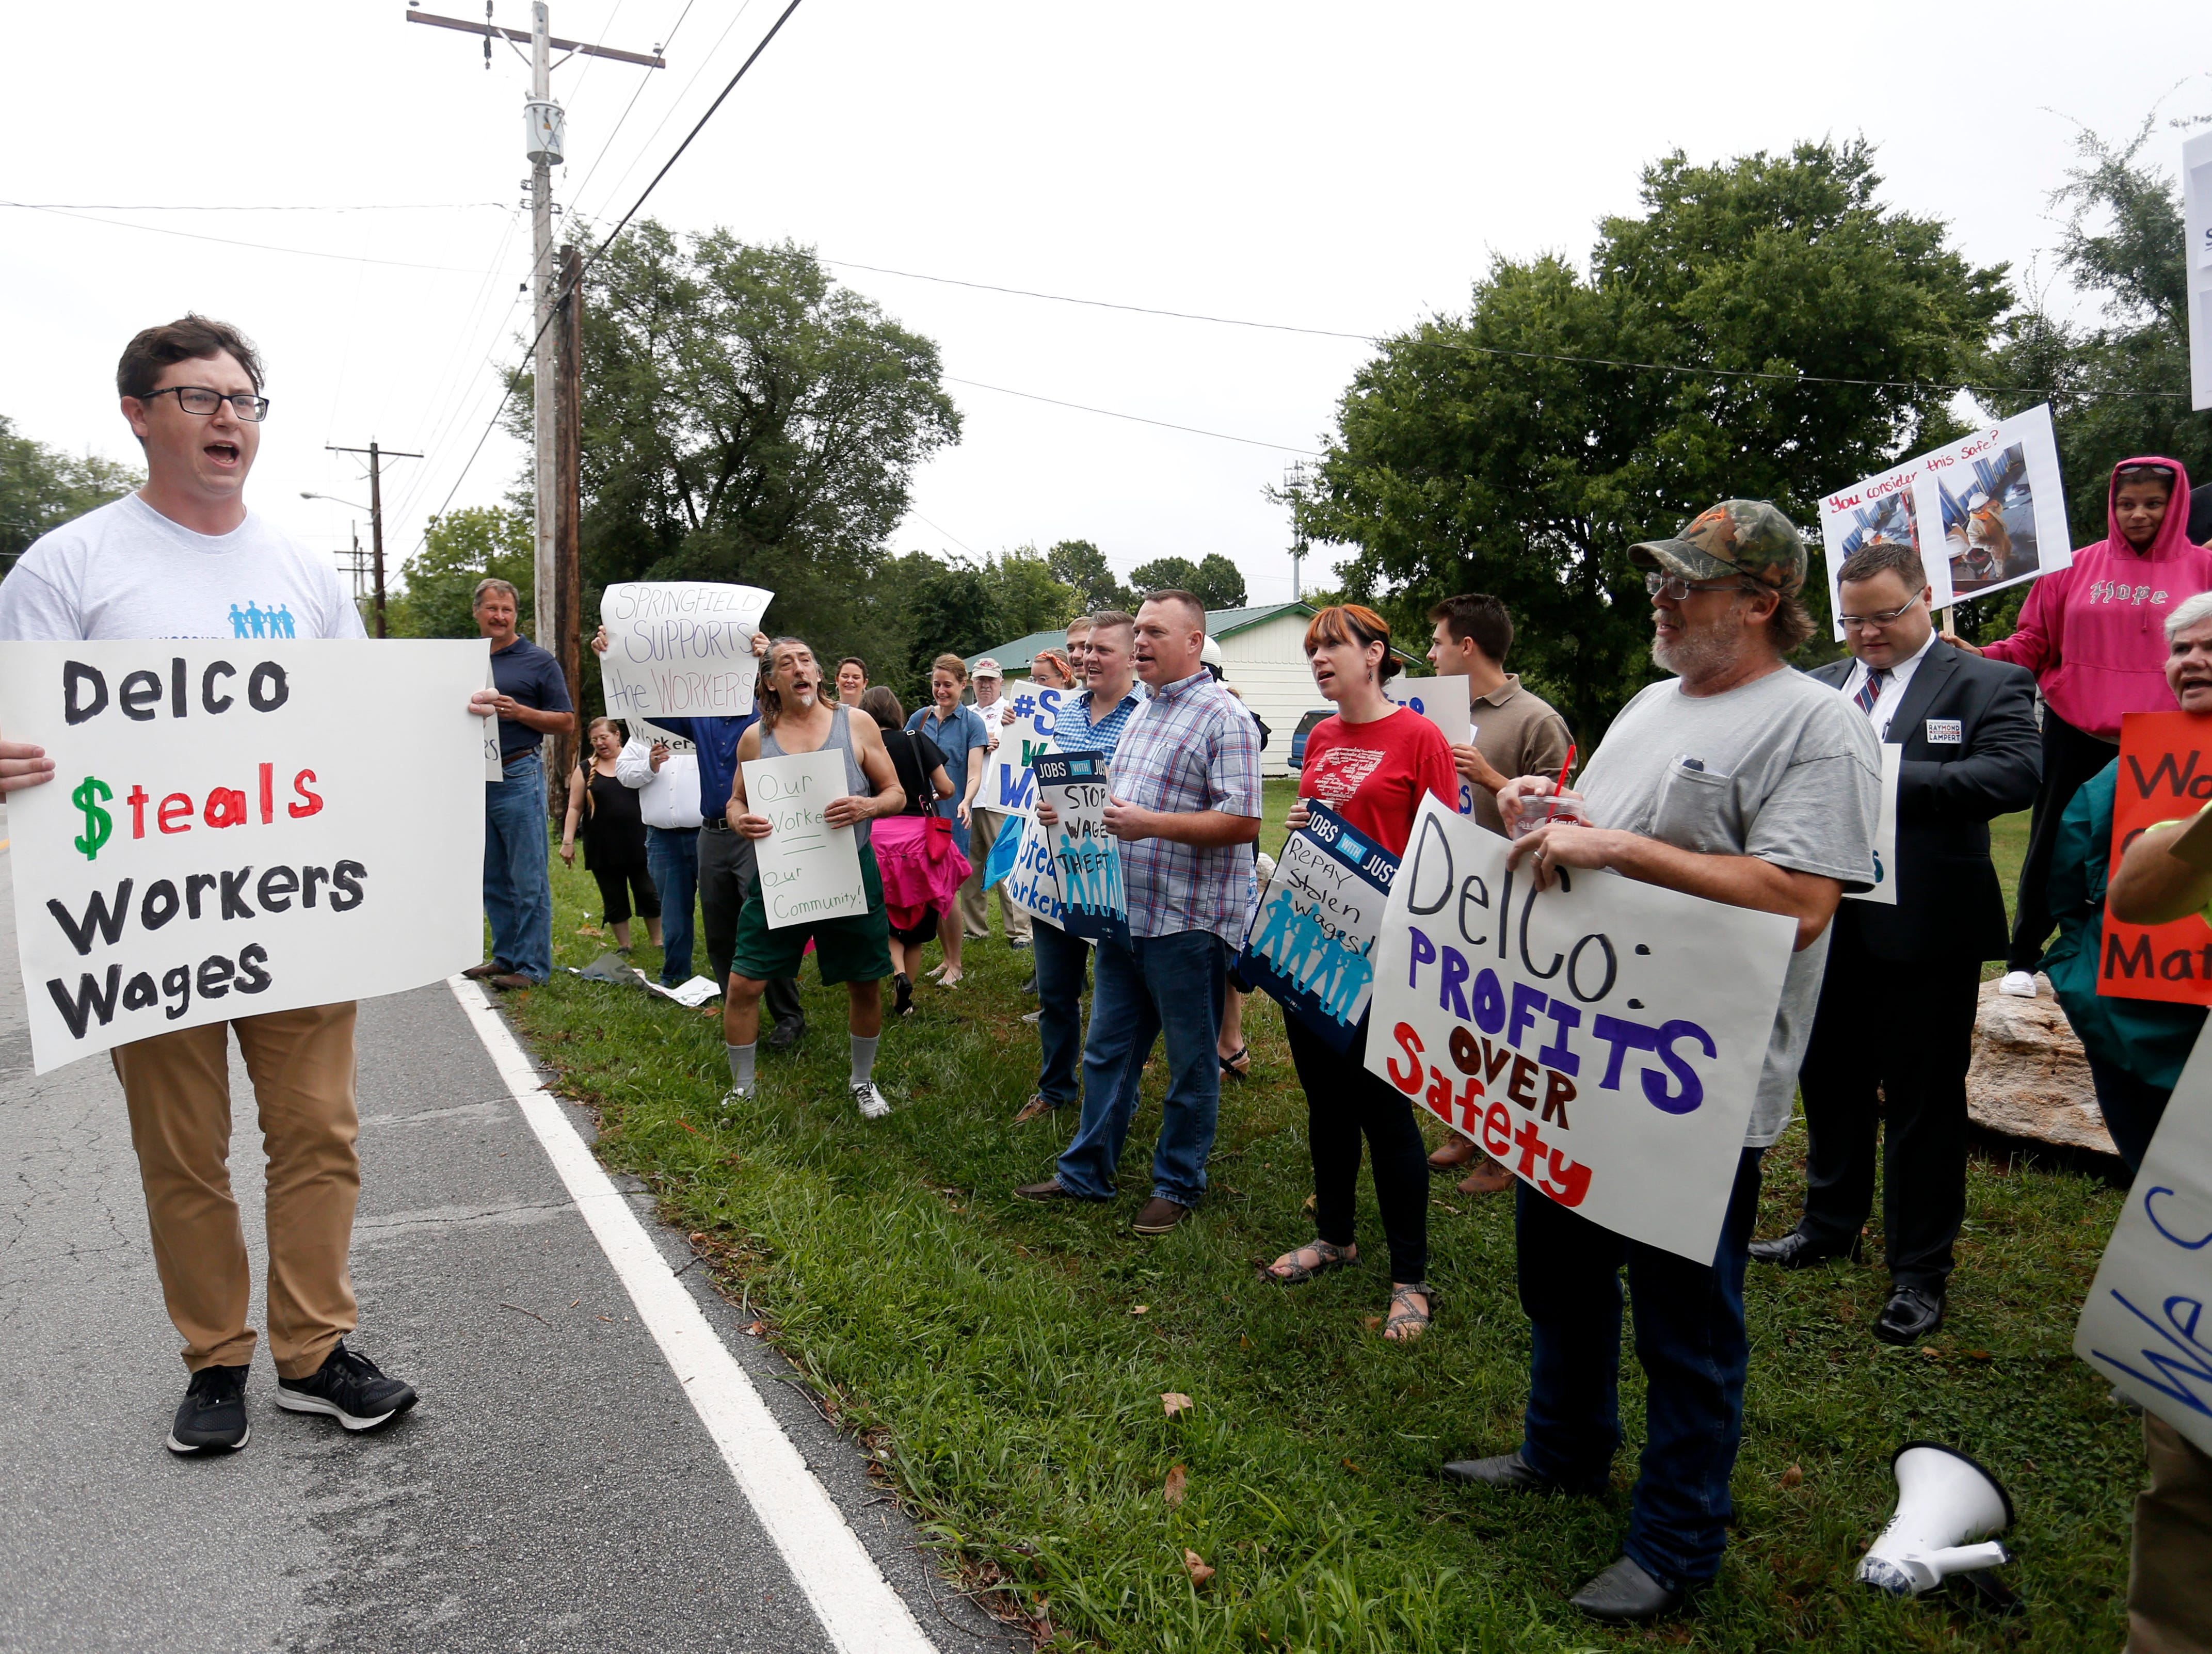 Alex Johnson leads a chant outside DelCo Construction on Tuesday, Aug. 14, 2018. Protestors claimed that DelCo and its owner, Jeff Delmont, subject workers to unsafe conditions, low wages, and inadequate training.